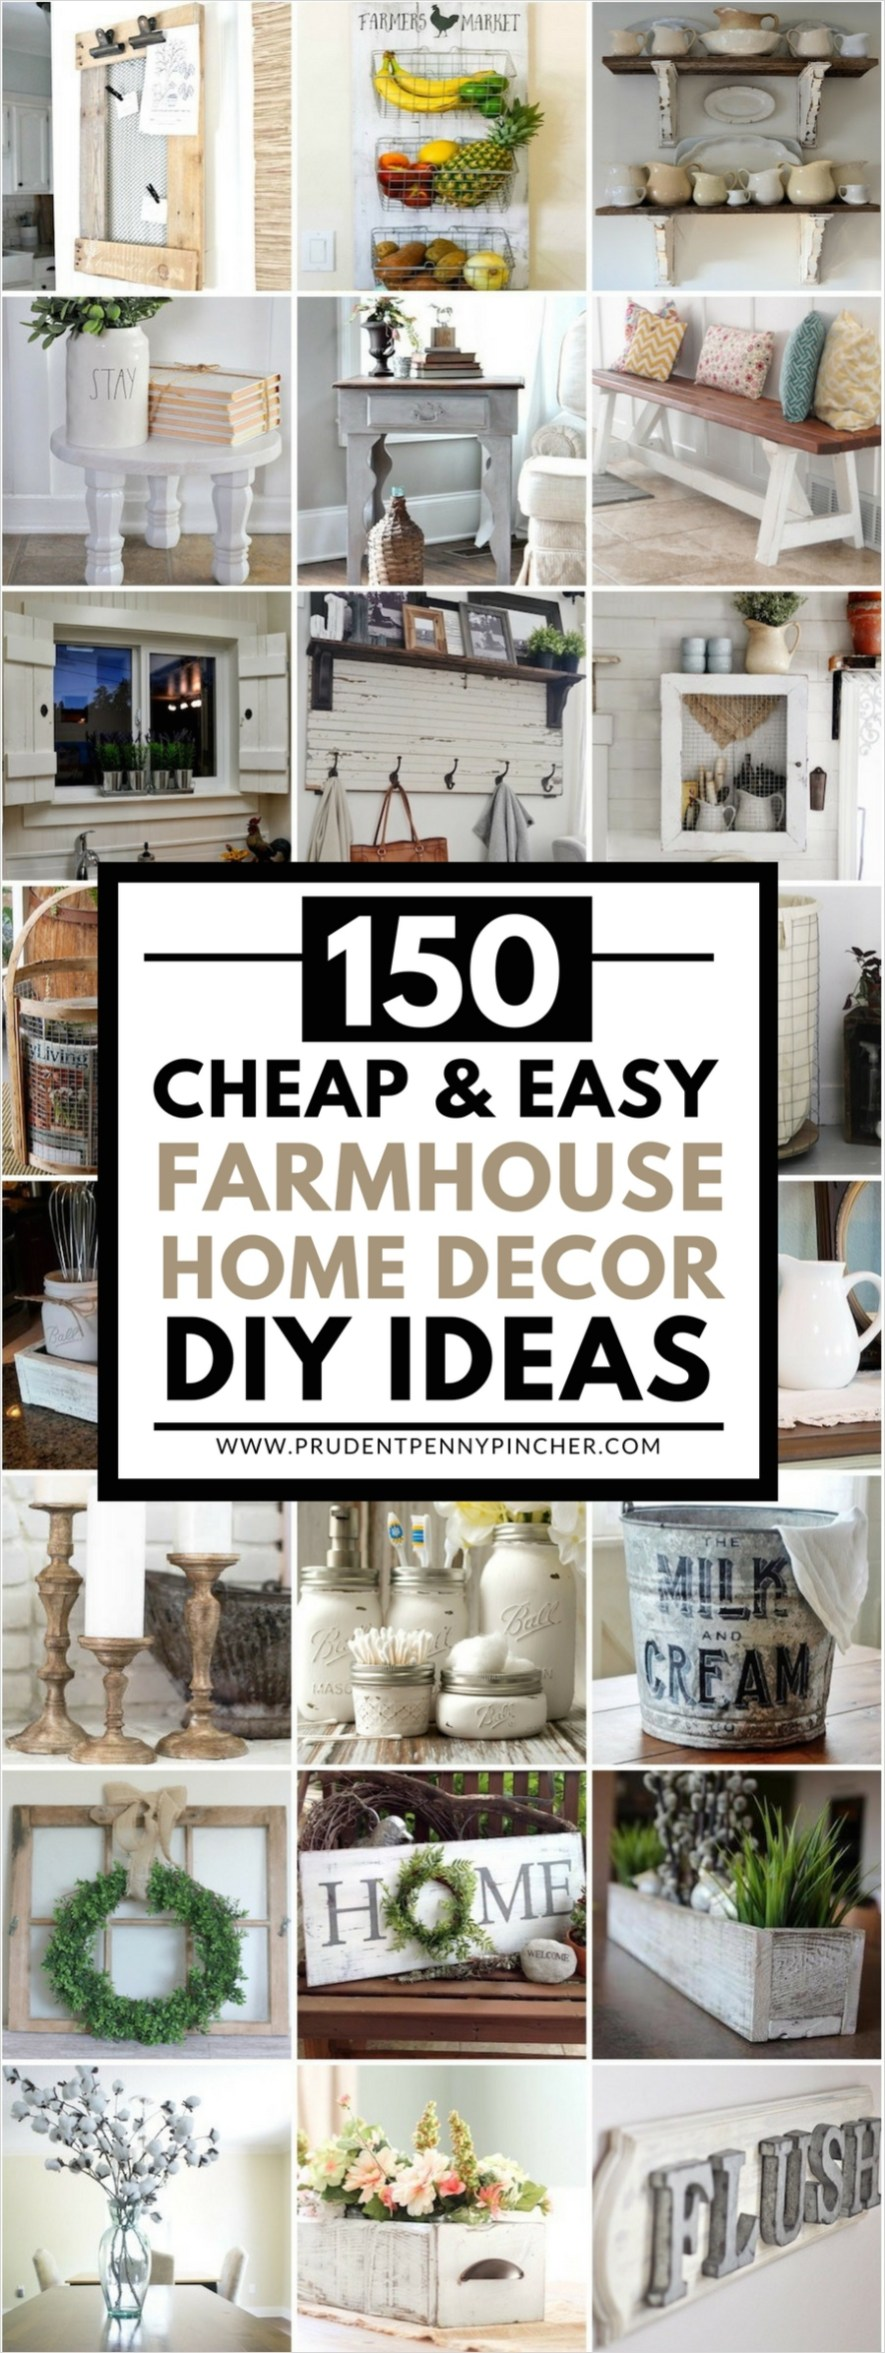 Farmhouse Chic Decorating Ideas 51 150 Cheap and Easy Diy Farmhouse Style Home Decor Ideas 2